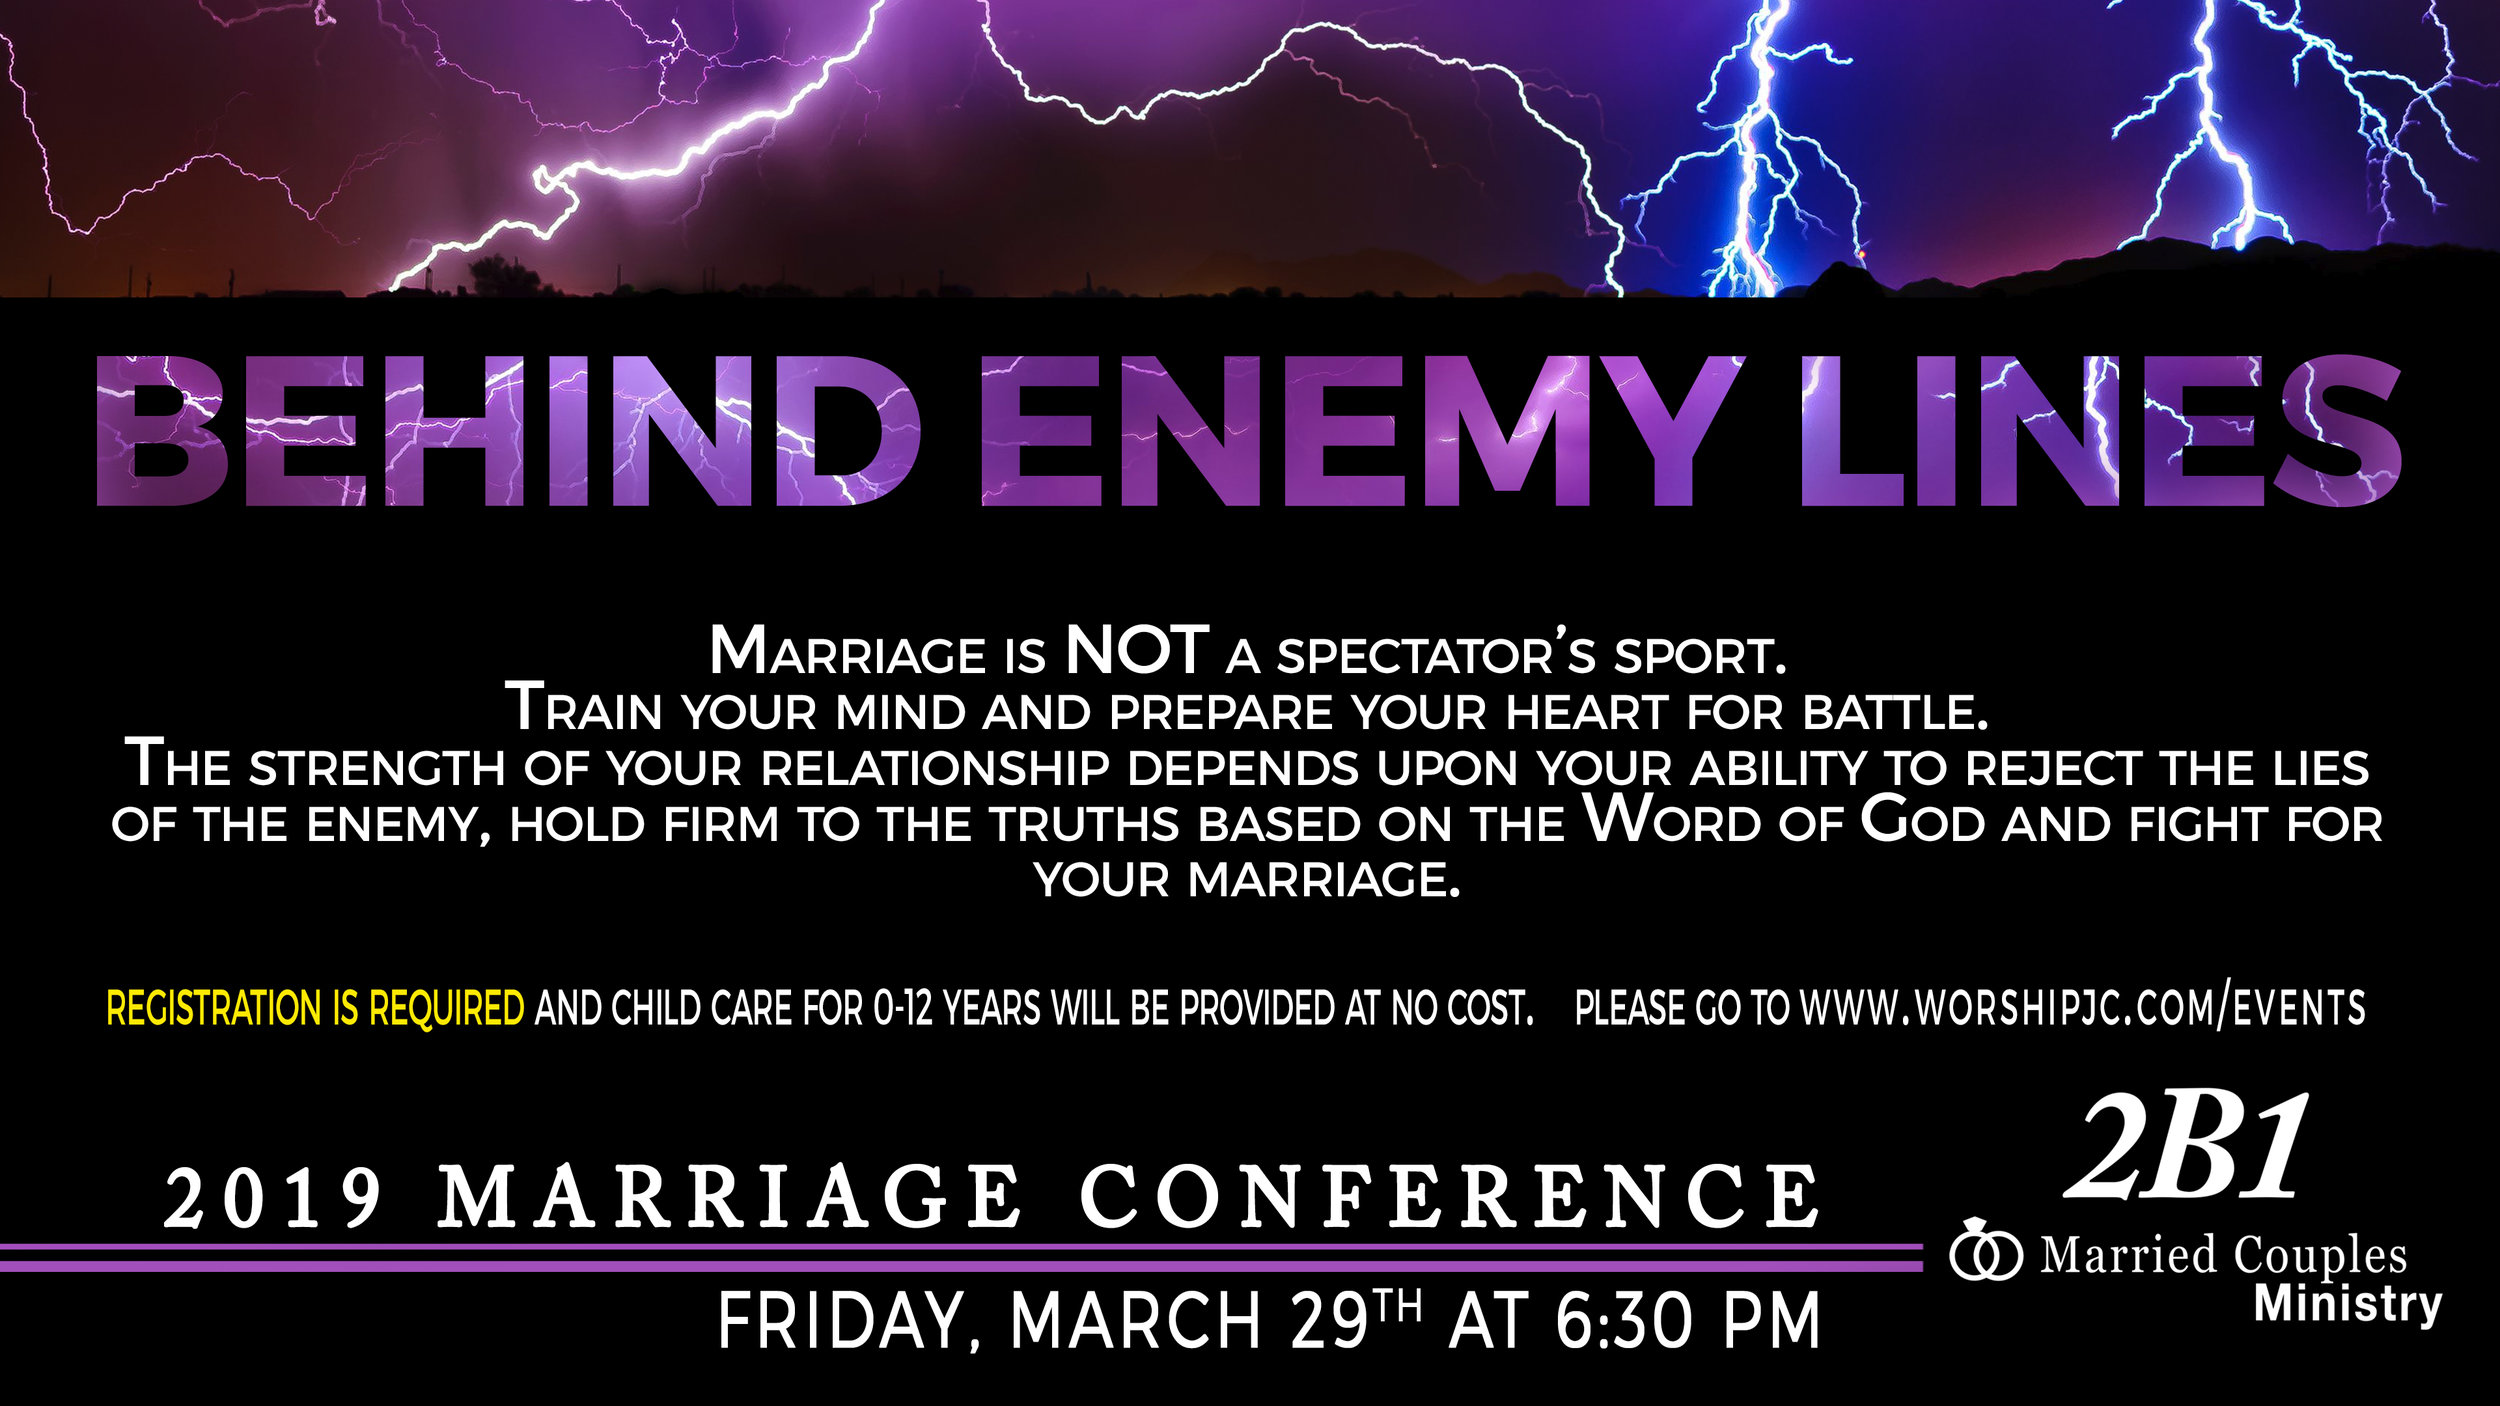 2B1 Marriage Conference 2019 new.jpg